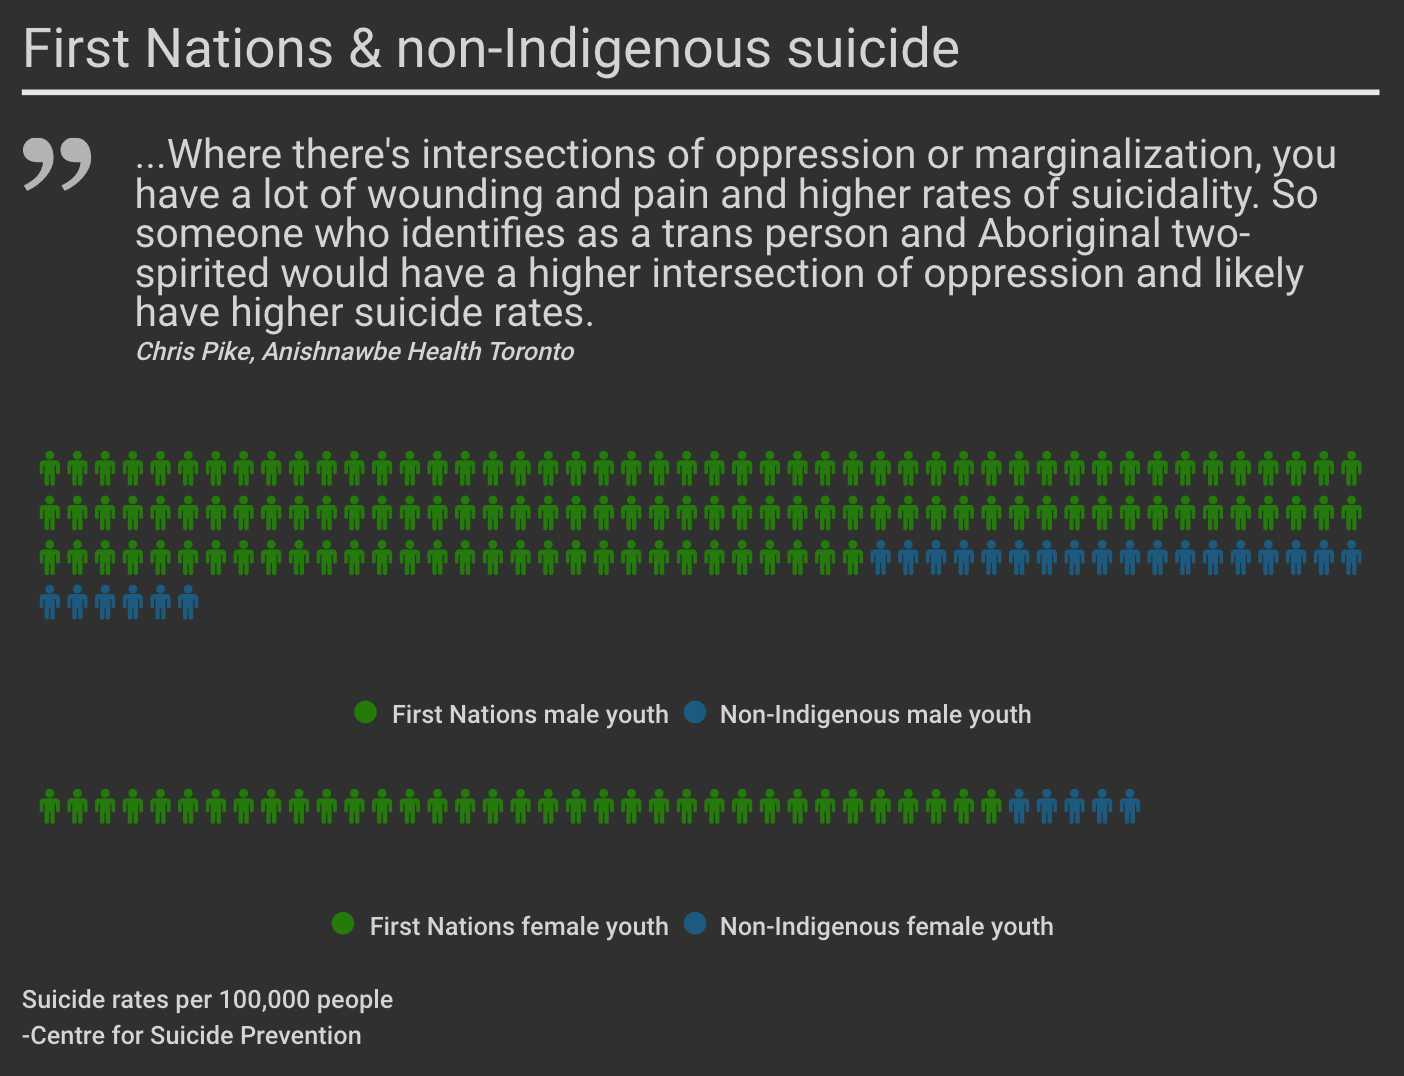 An infographic on First Nations and non-indigenous suicide